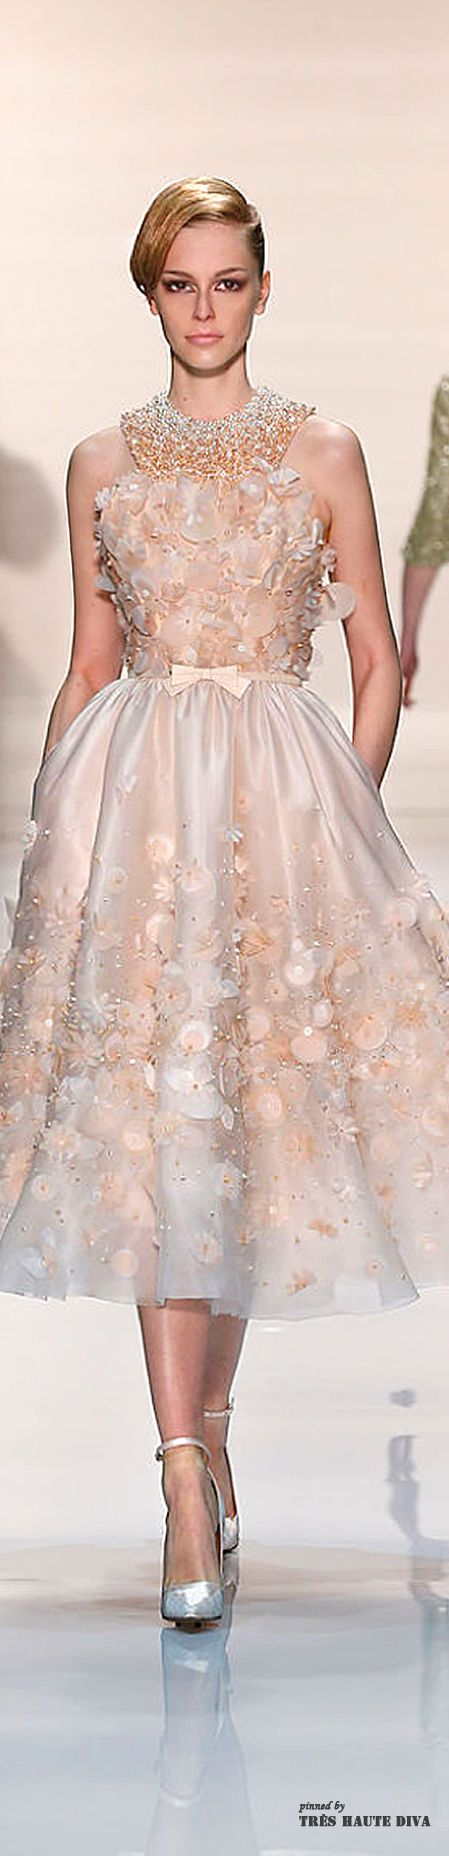 Georges Hobeika Spring 2014 Couture | The House of Beccaria~